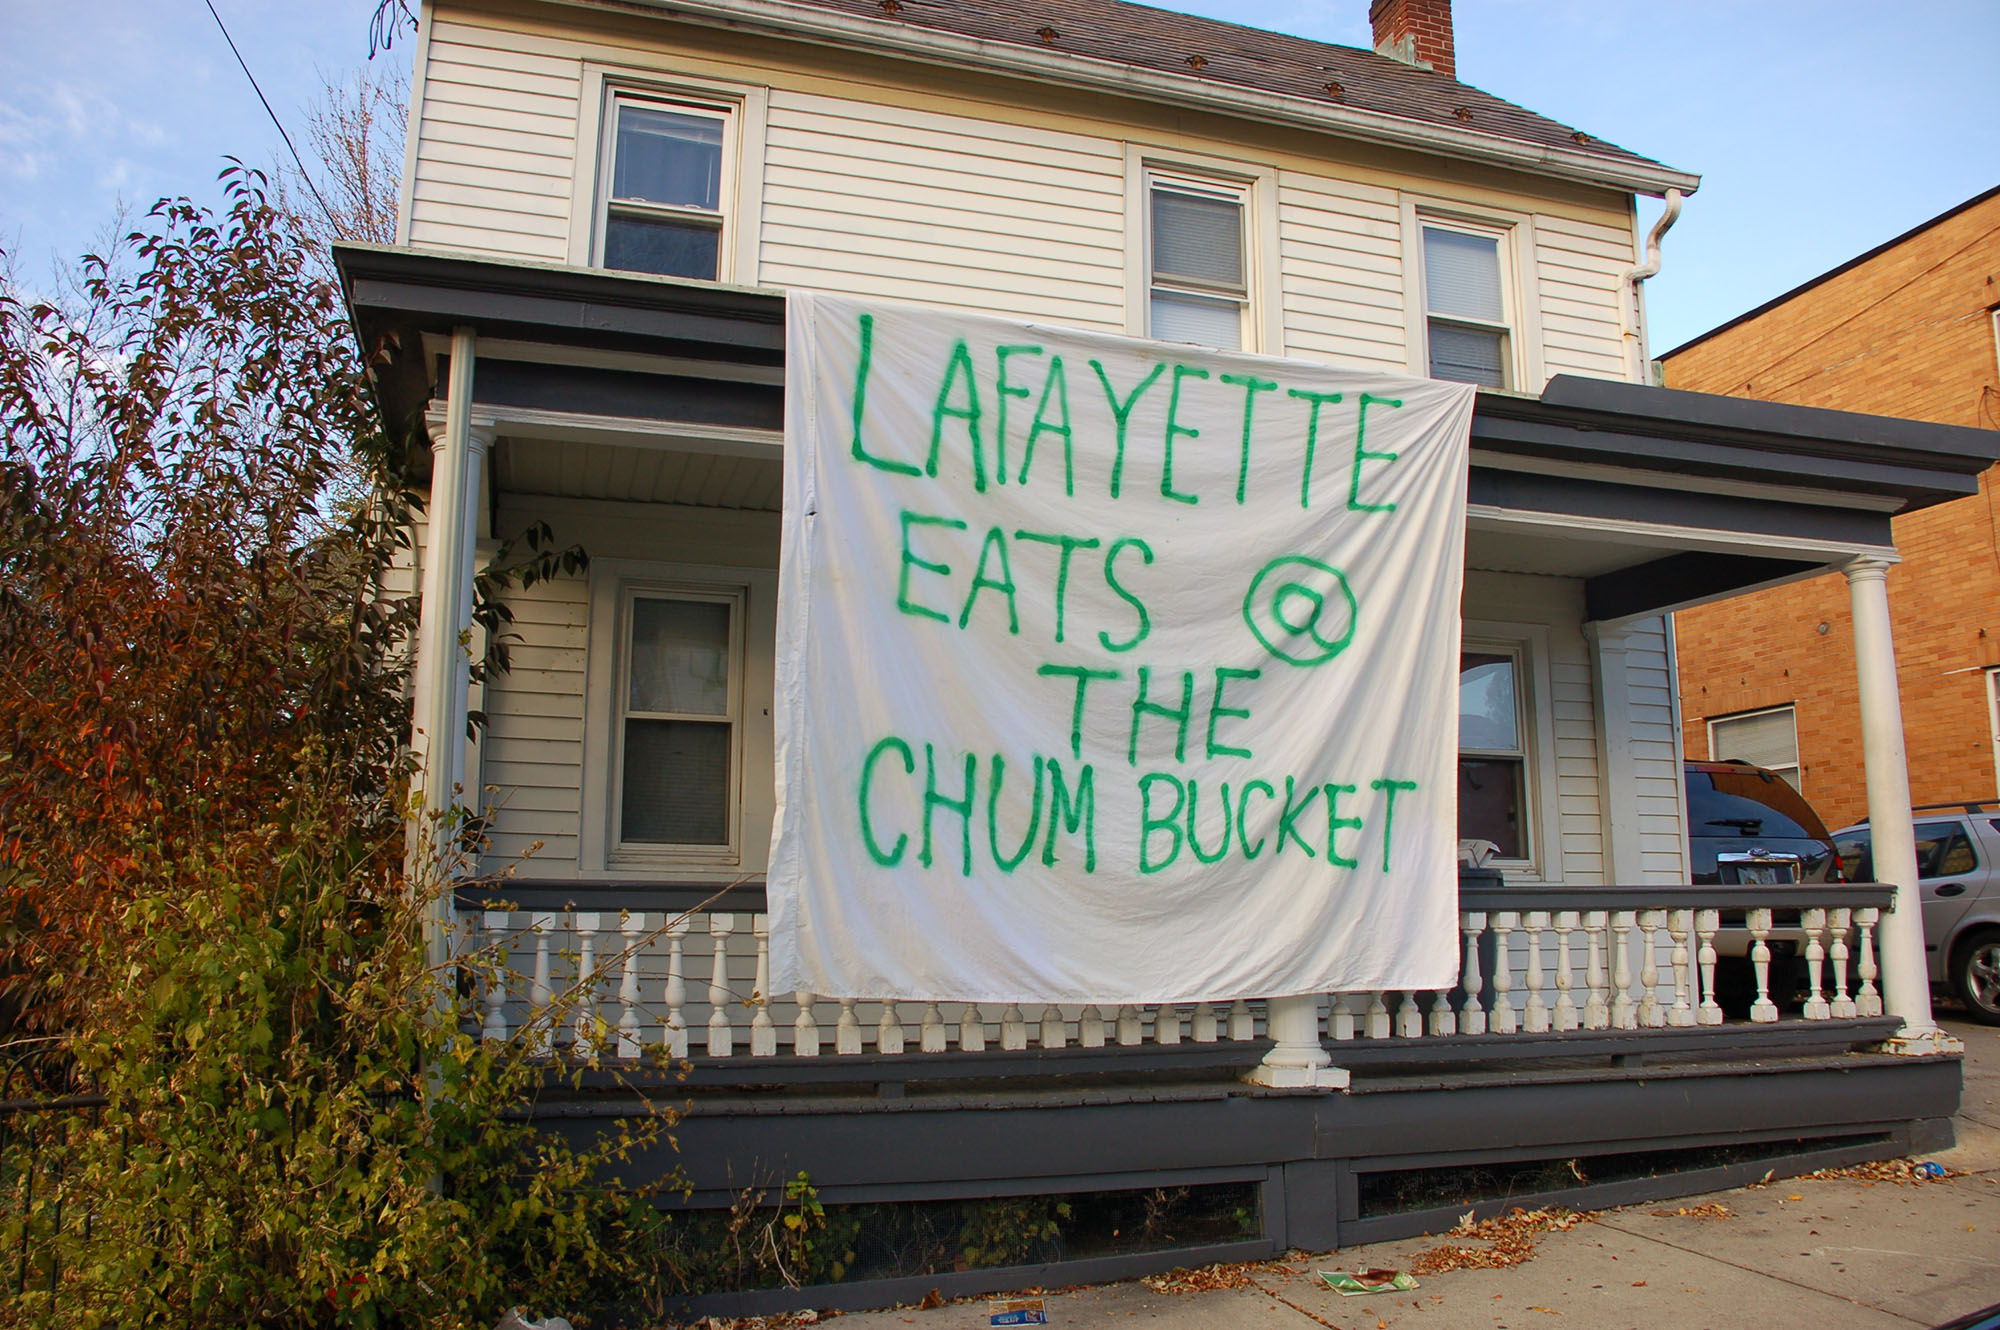 "A sign reading ""Lafayette eats at the Chum Bucket"" hangs on a house on East Fifth Street on Nov. 15, 2016. The sign is a reference to the television show ""Spongebob Squarepants."" (Samantha Tomaszewski/B&W Staff)"